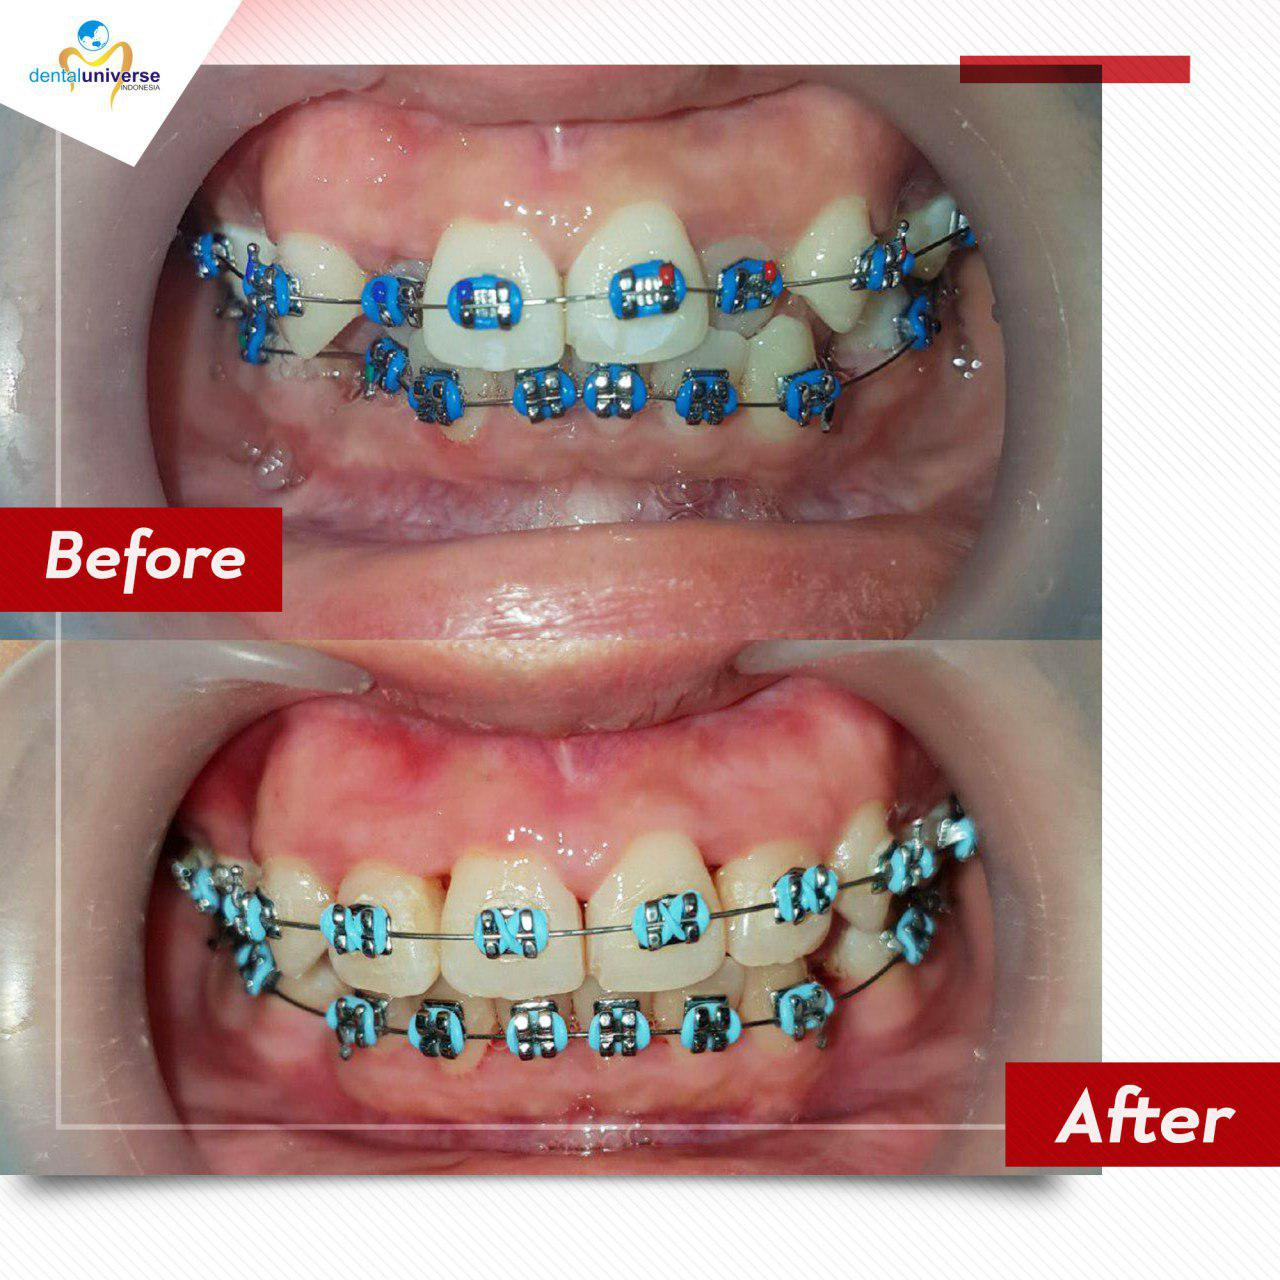 Before After Behel 6 bulan - Dental Universe Indonesia